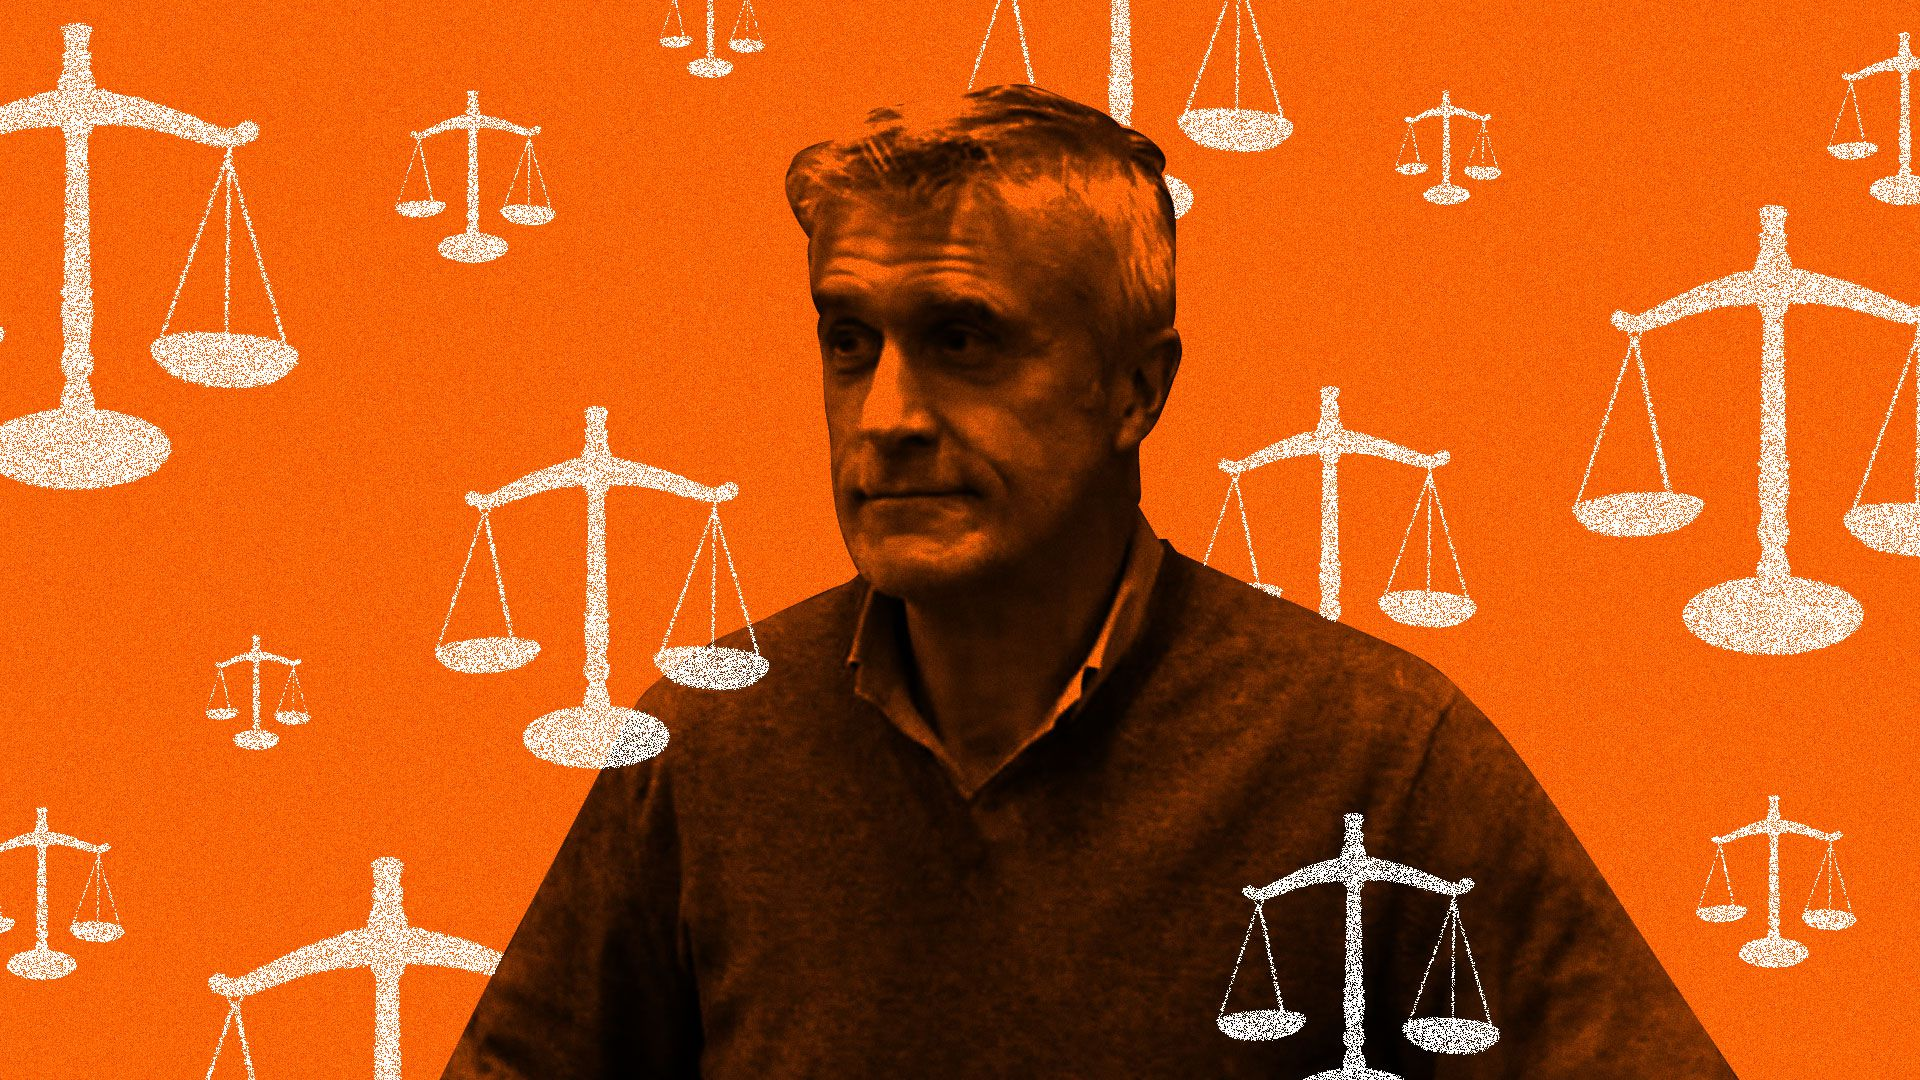 In this image, Mike Calvey stands in front of a red-orange background decorated with various scales of justice.